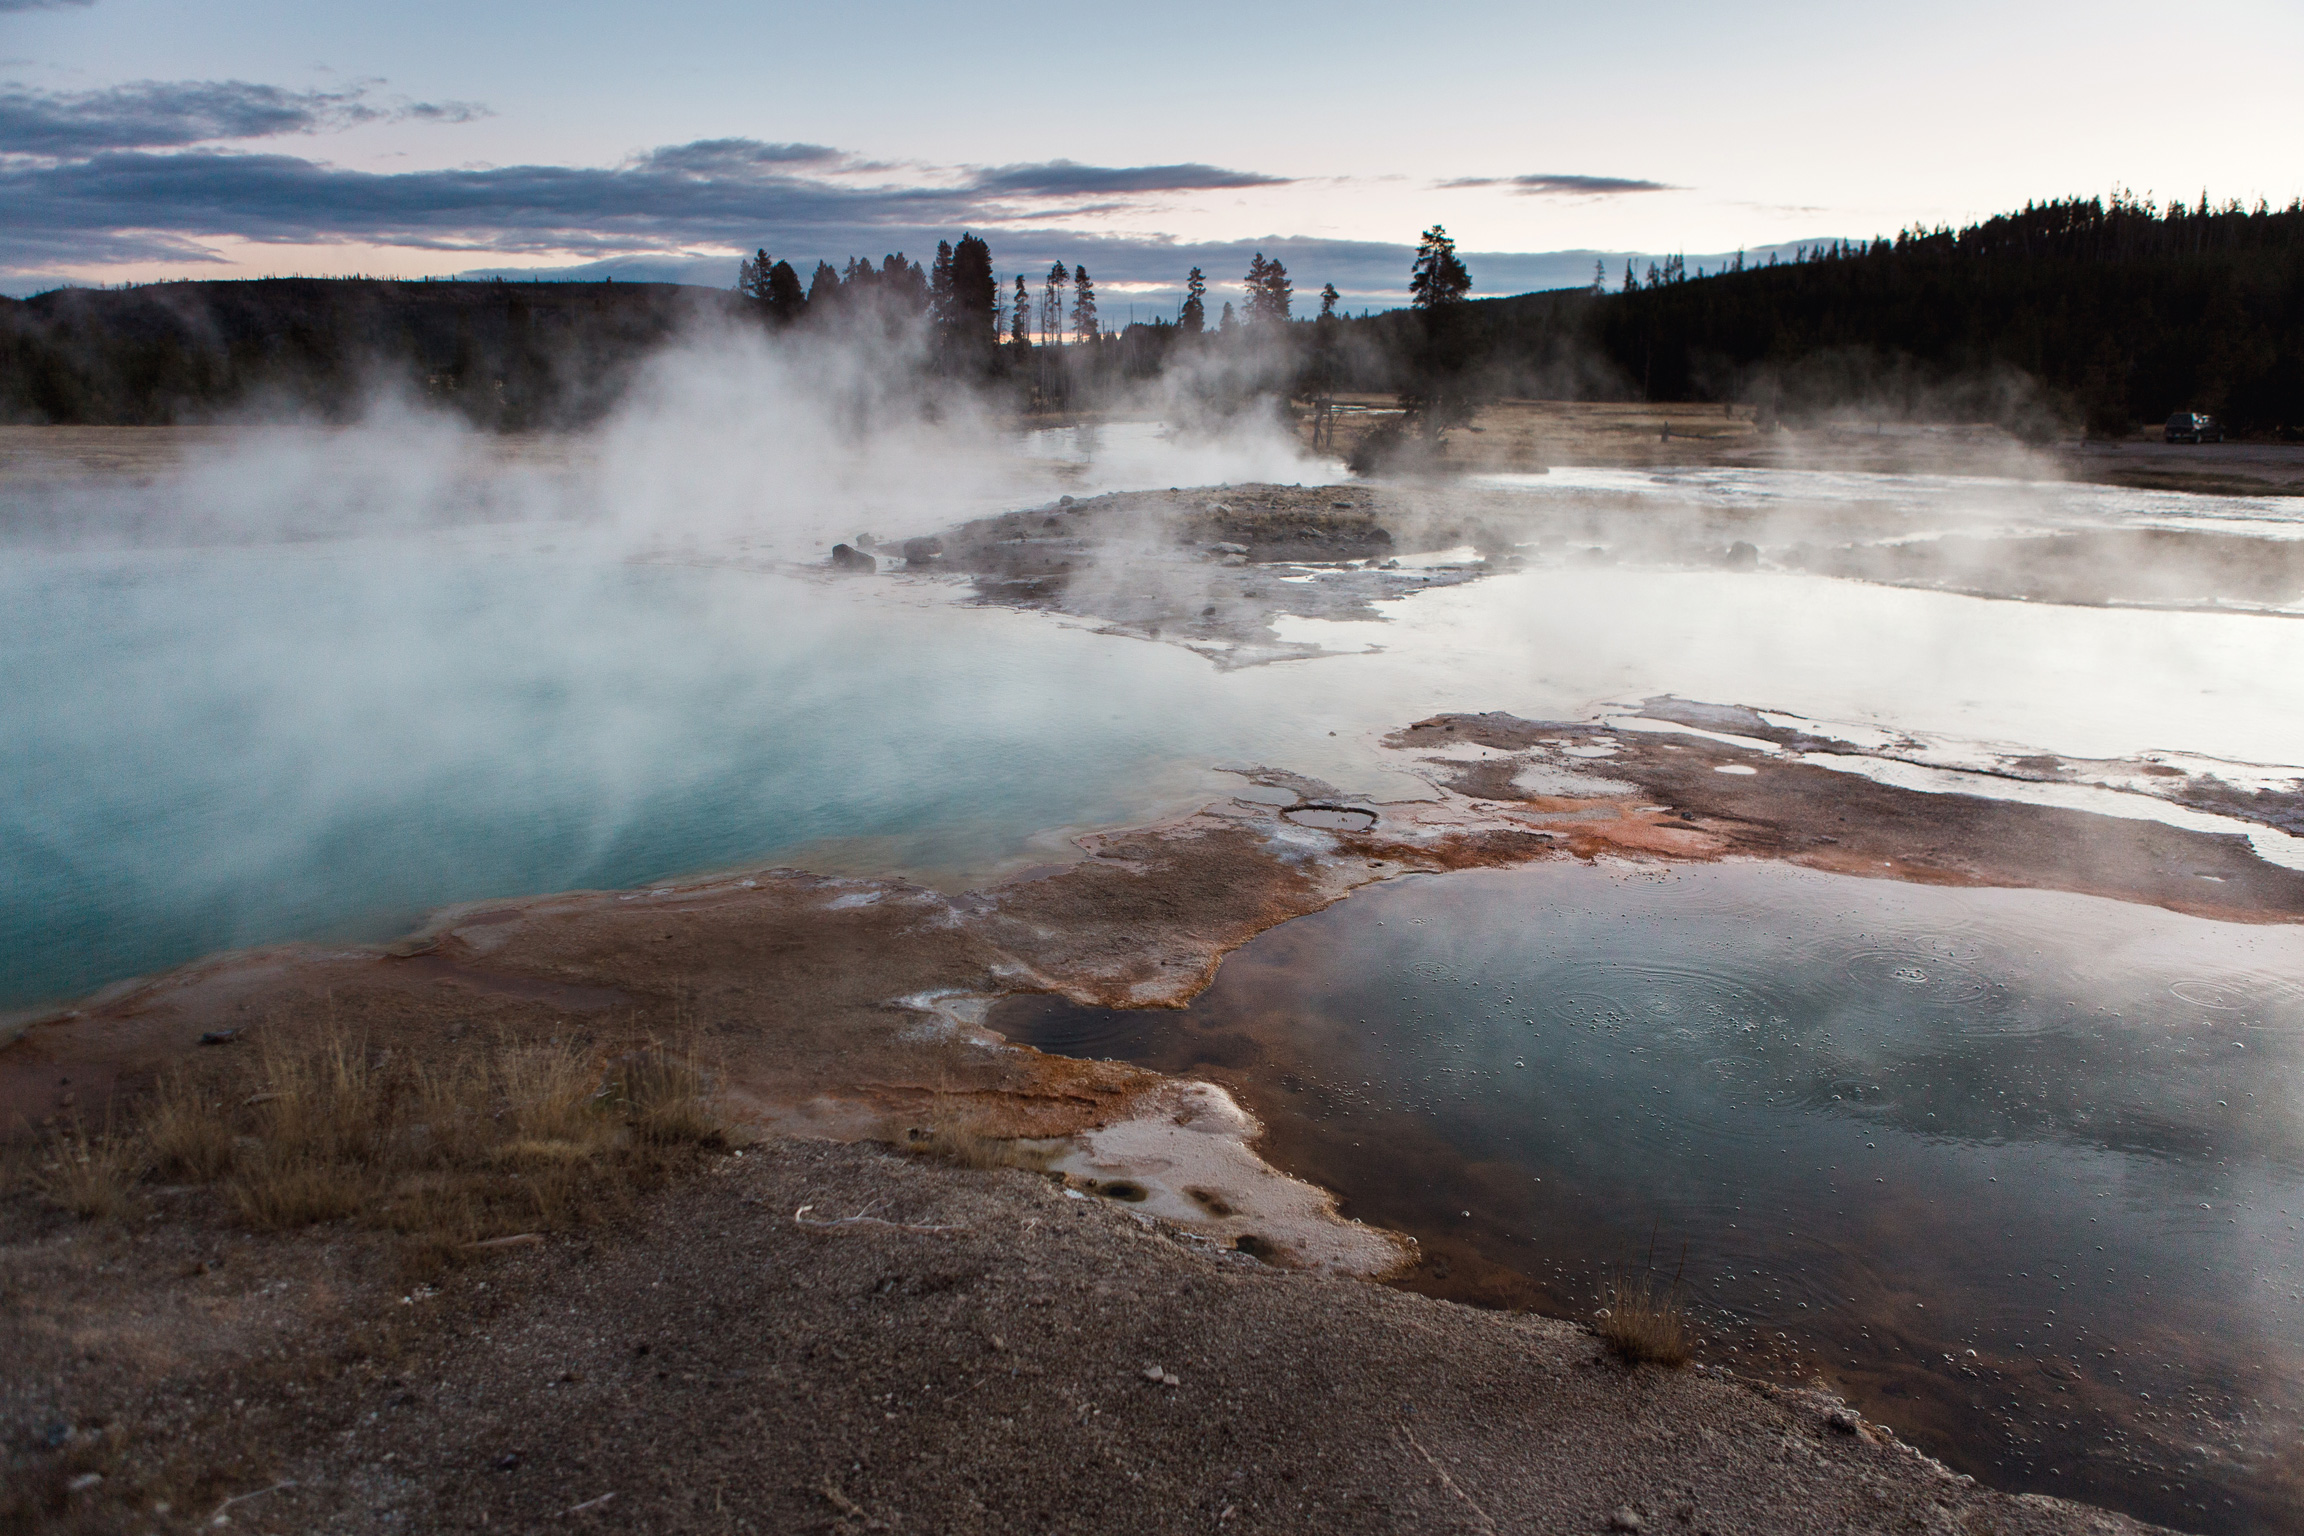 CindyGiovagnoli_road_trip_Yellowstone_National_Park_Montana_Wyoming_hot_springs_geyser_Old_Faithful_Grand_Prismatic-014.jpg